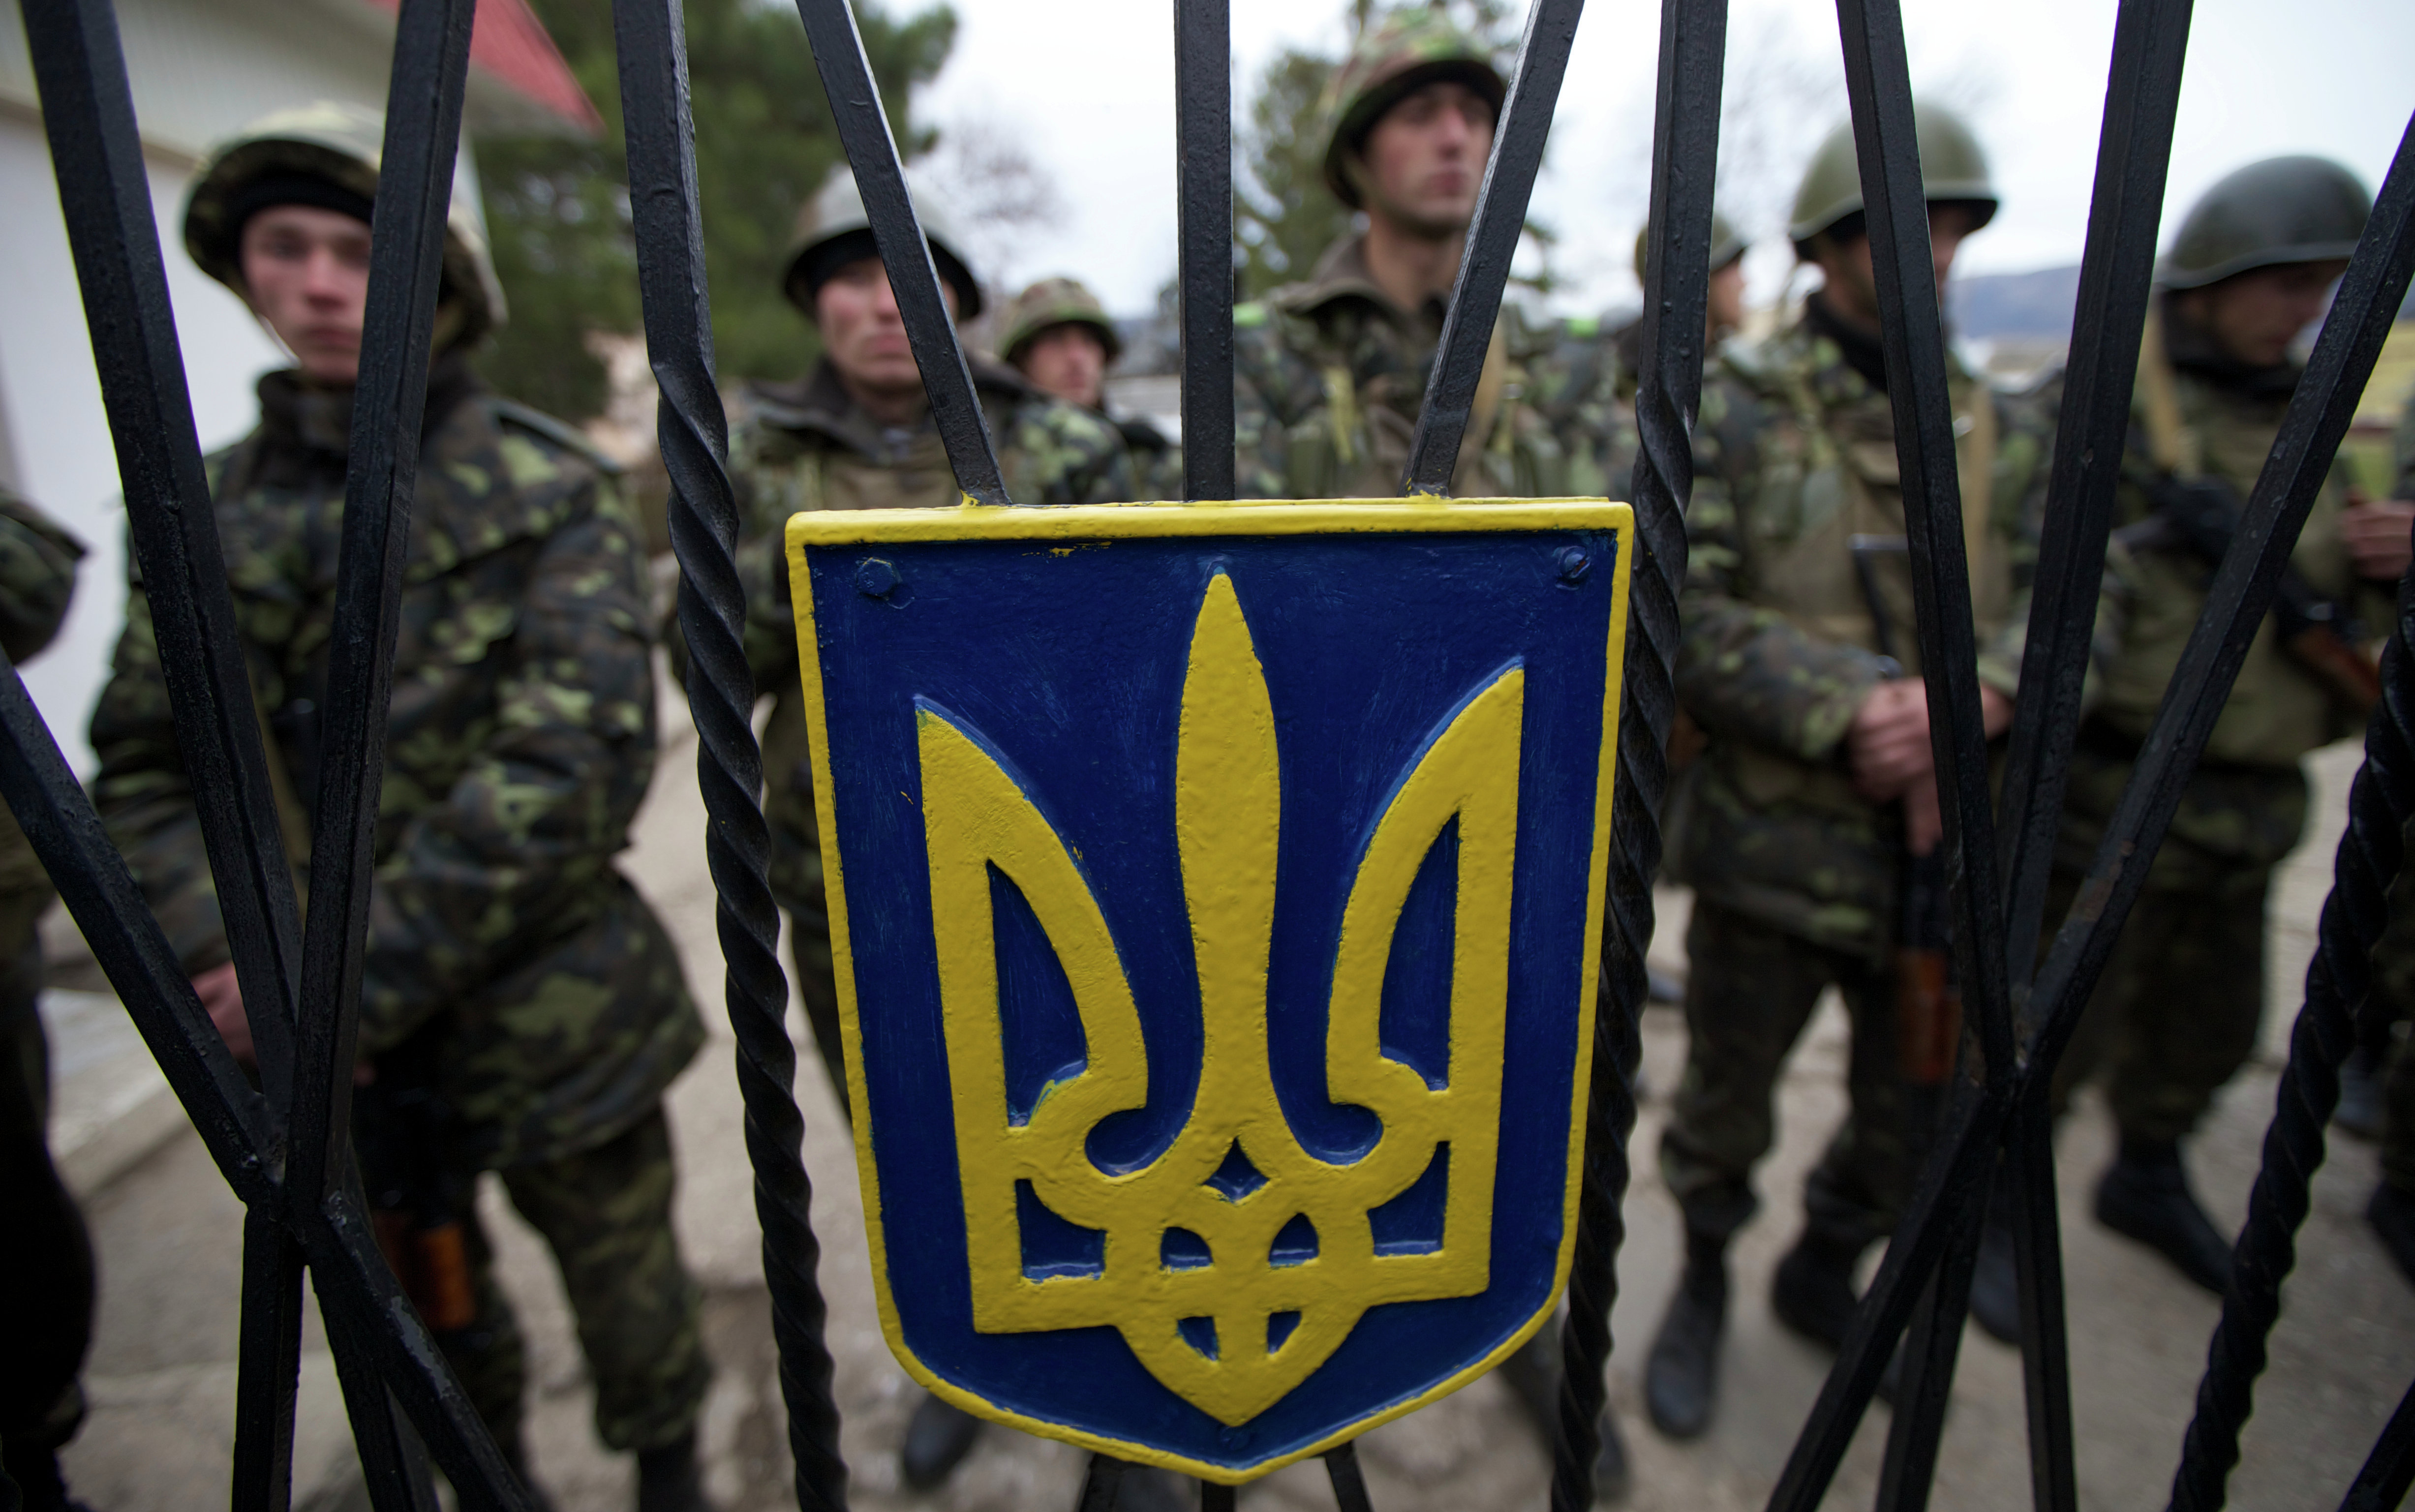 Ukrainian soldiers guard a gate to their military base in the village of Perevalne, outside of Simferopol, Ukraine, on Sunday, March 2, 2014